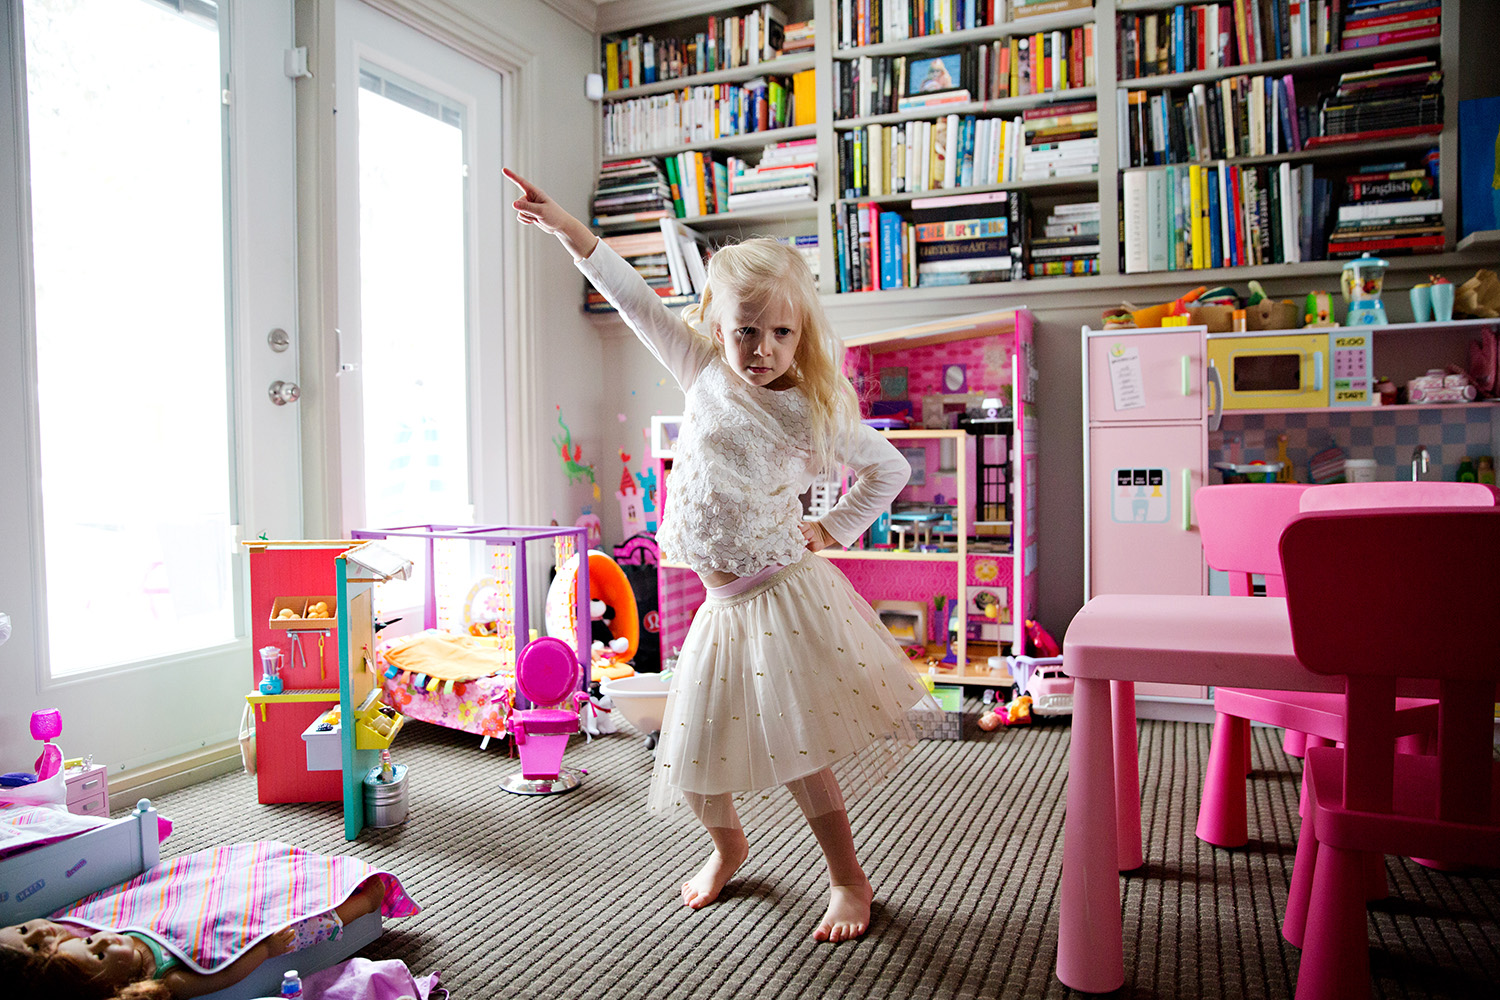 Disco dancing girl in her playroom